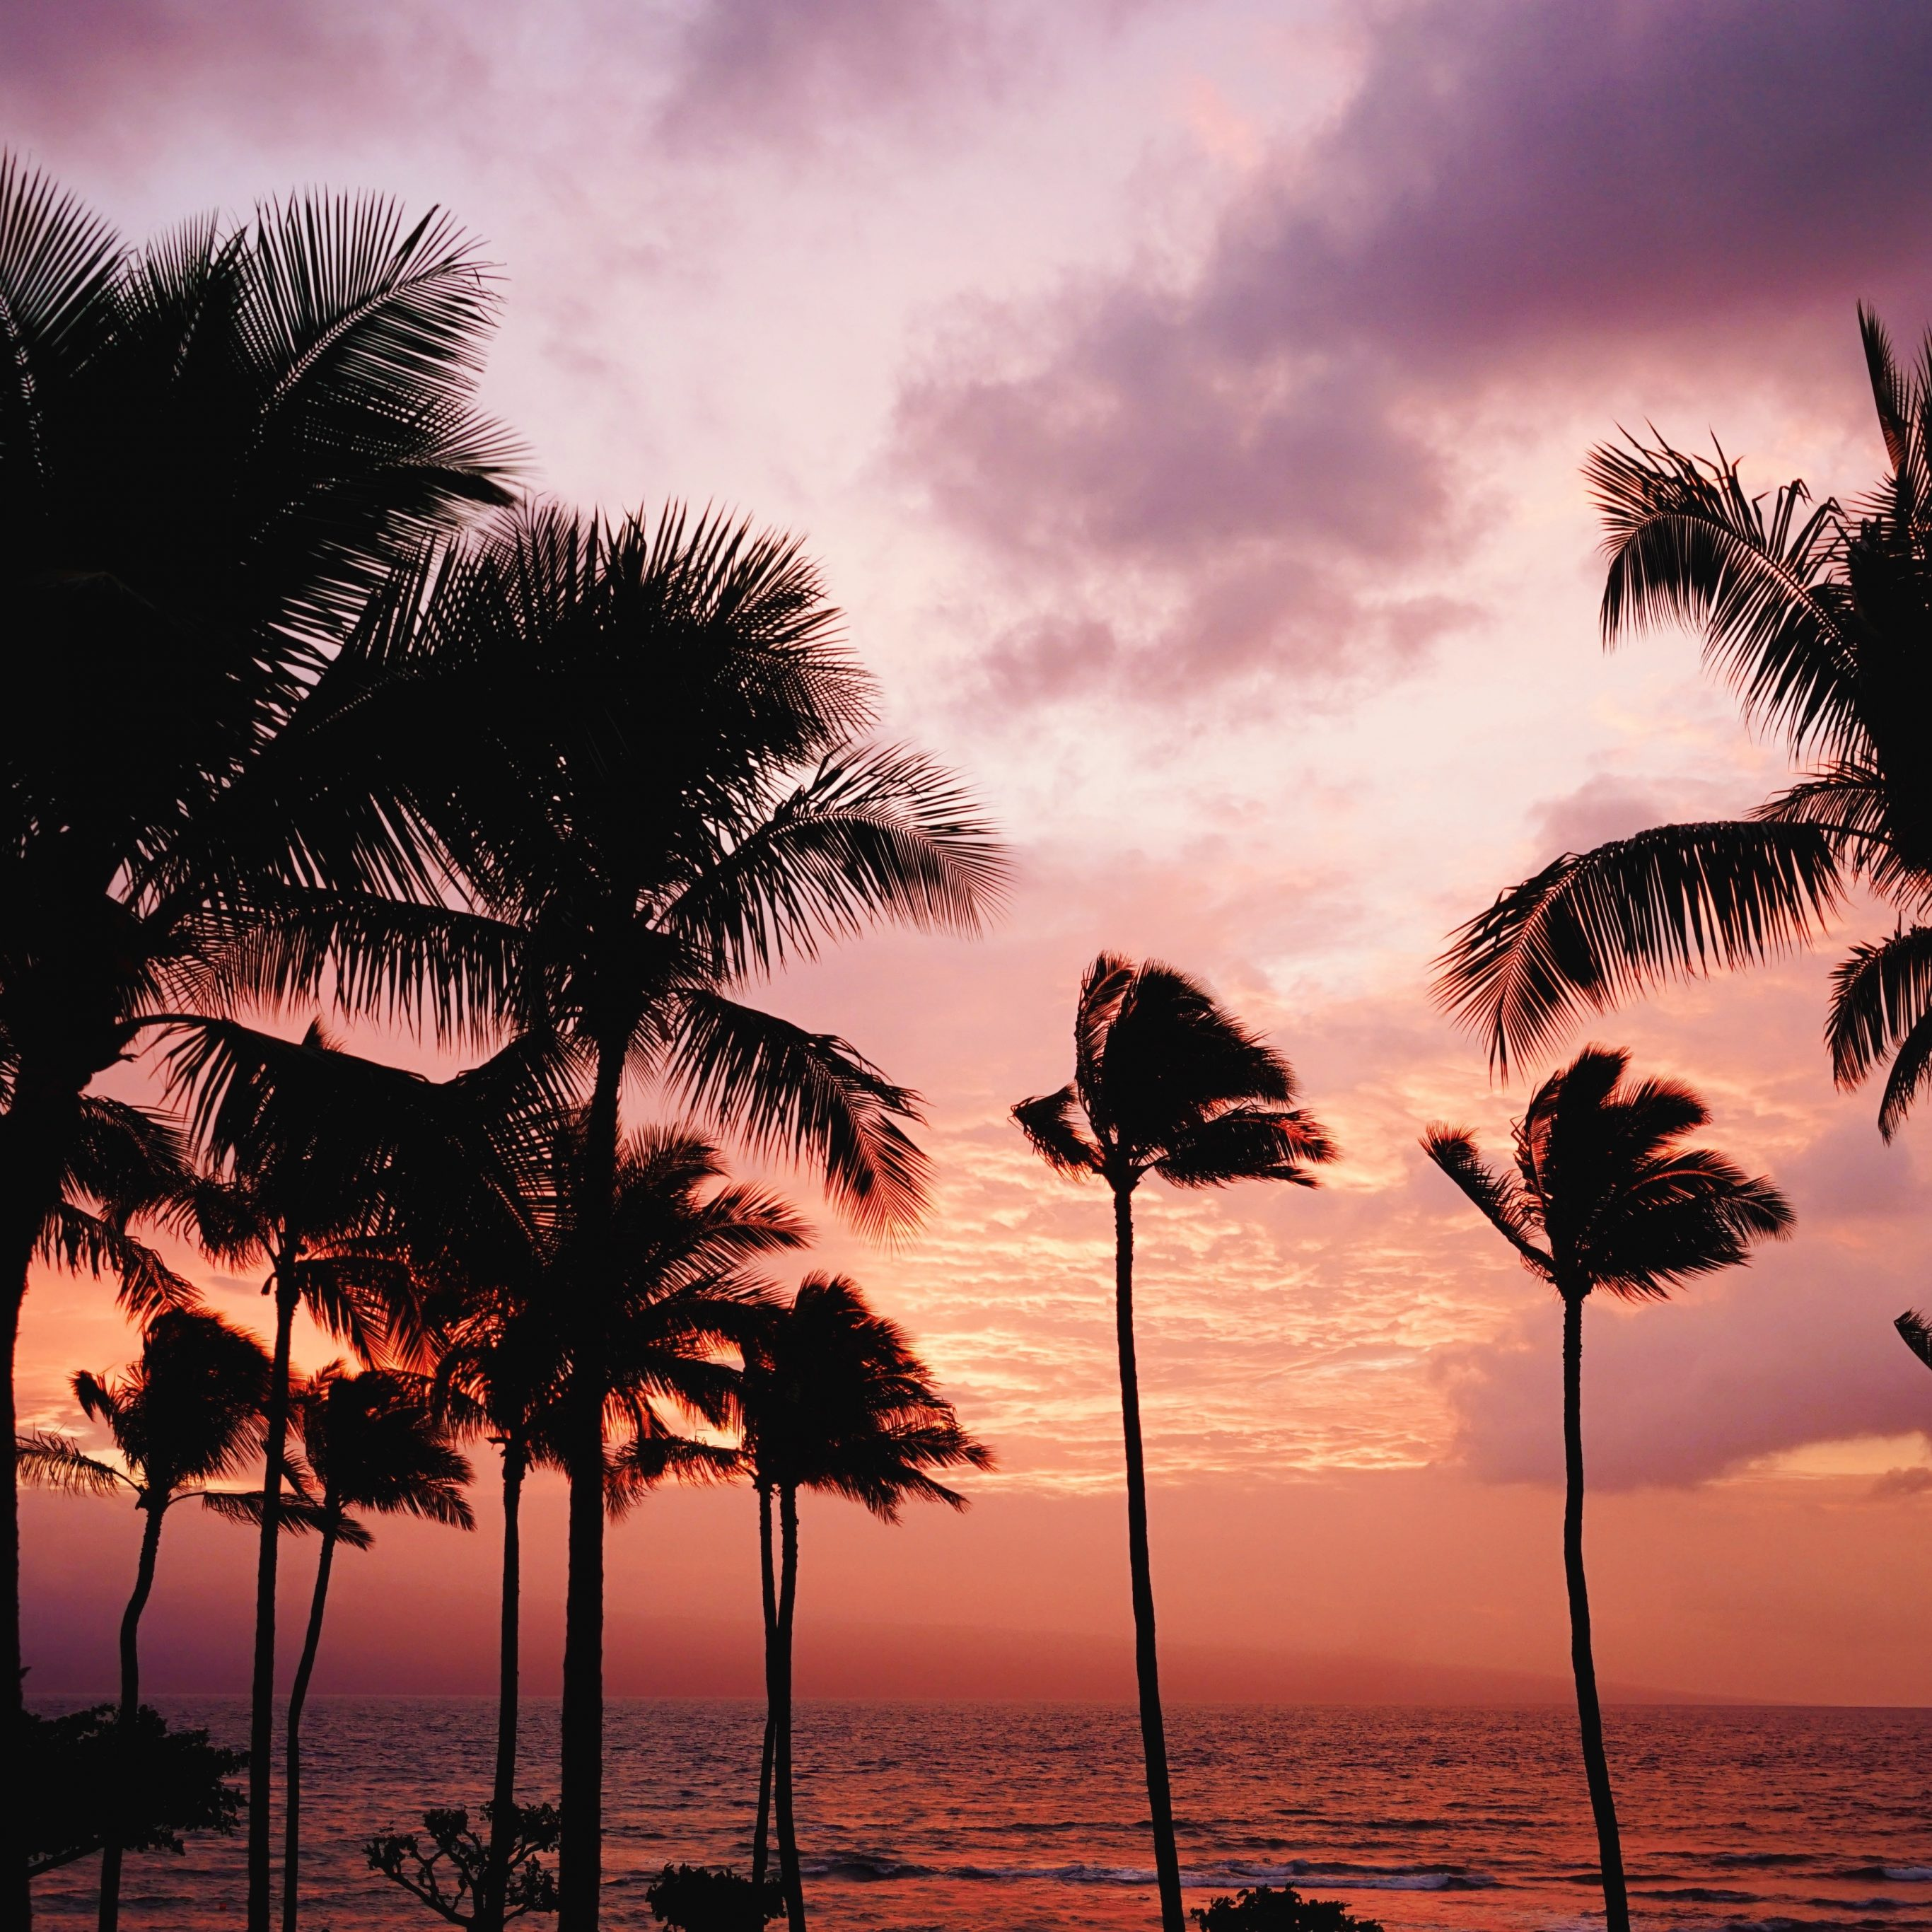 Sunset-On-A-Beach-With-Palm-Trees-2732x2